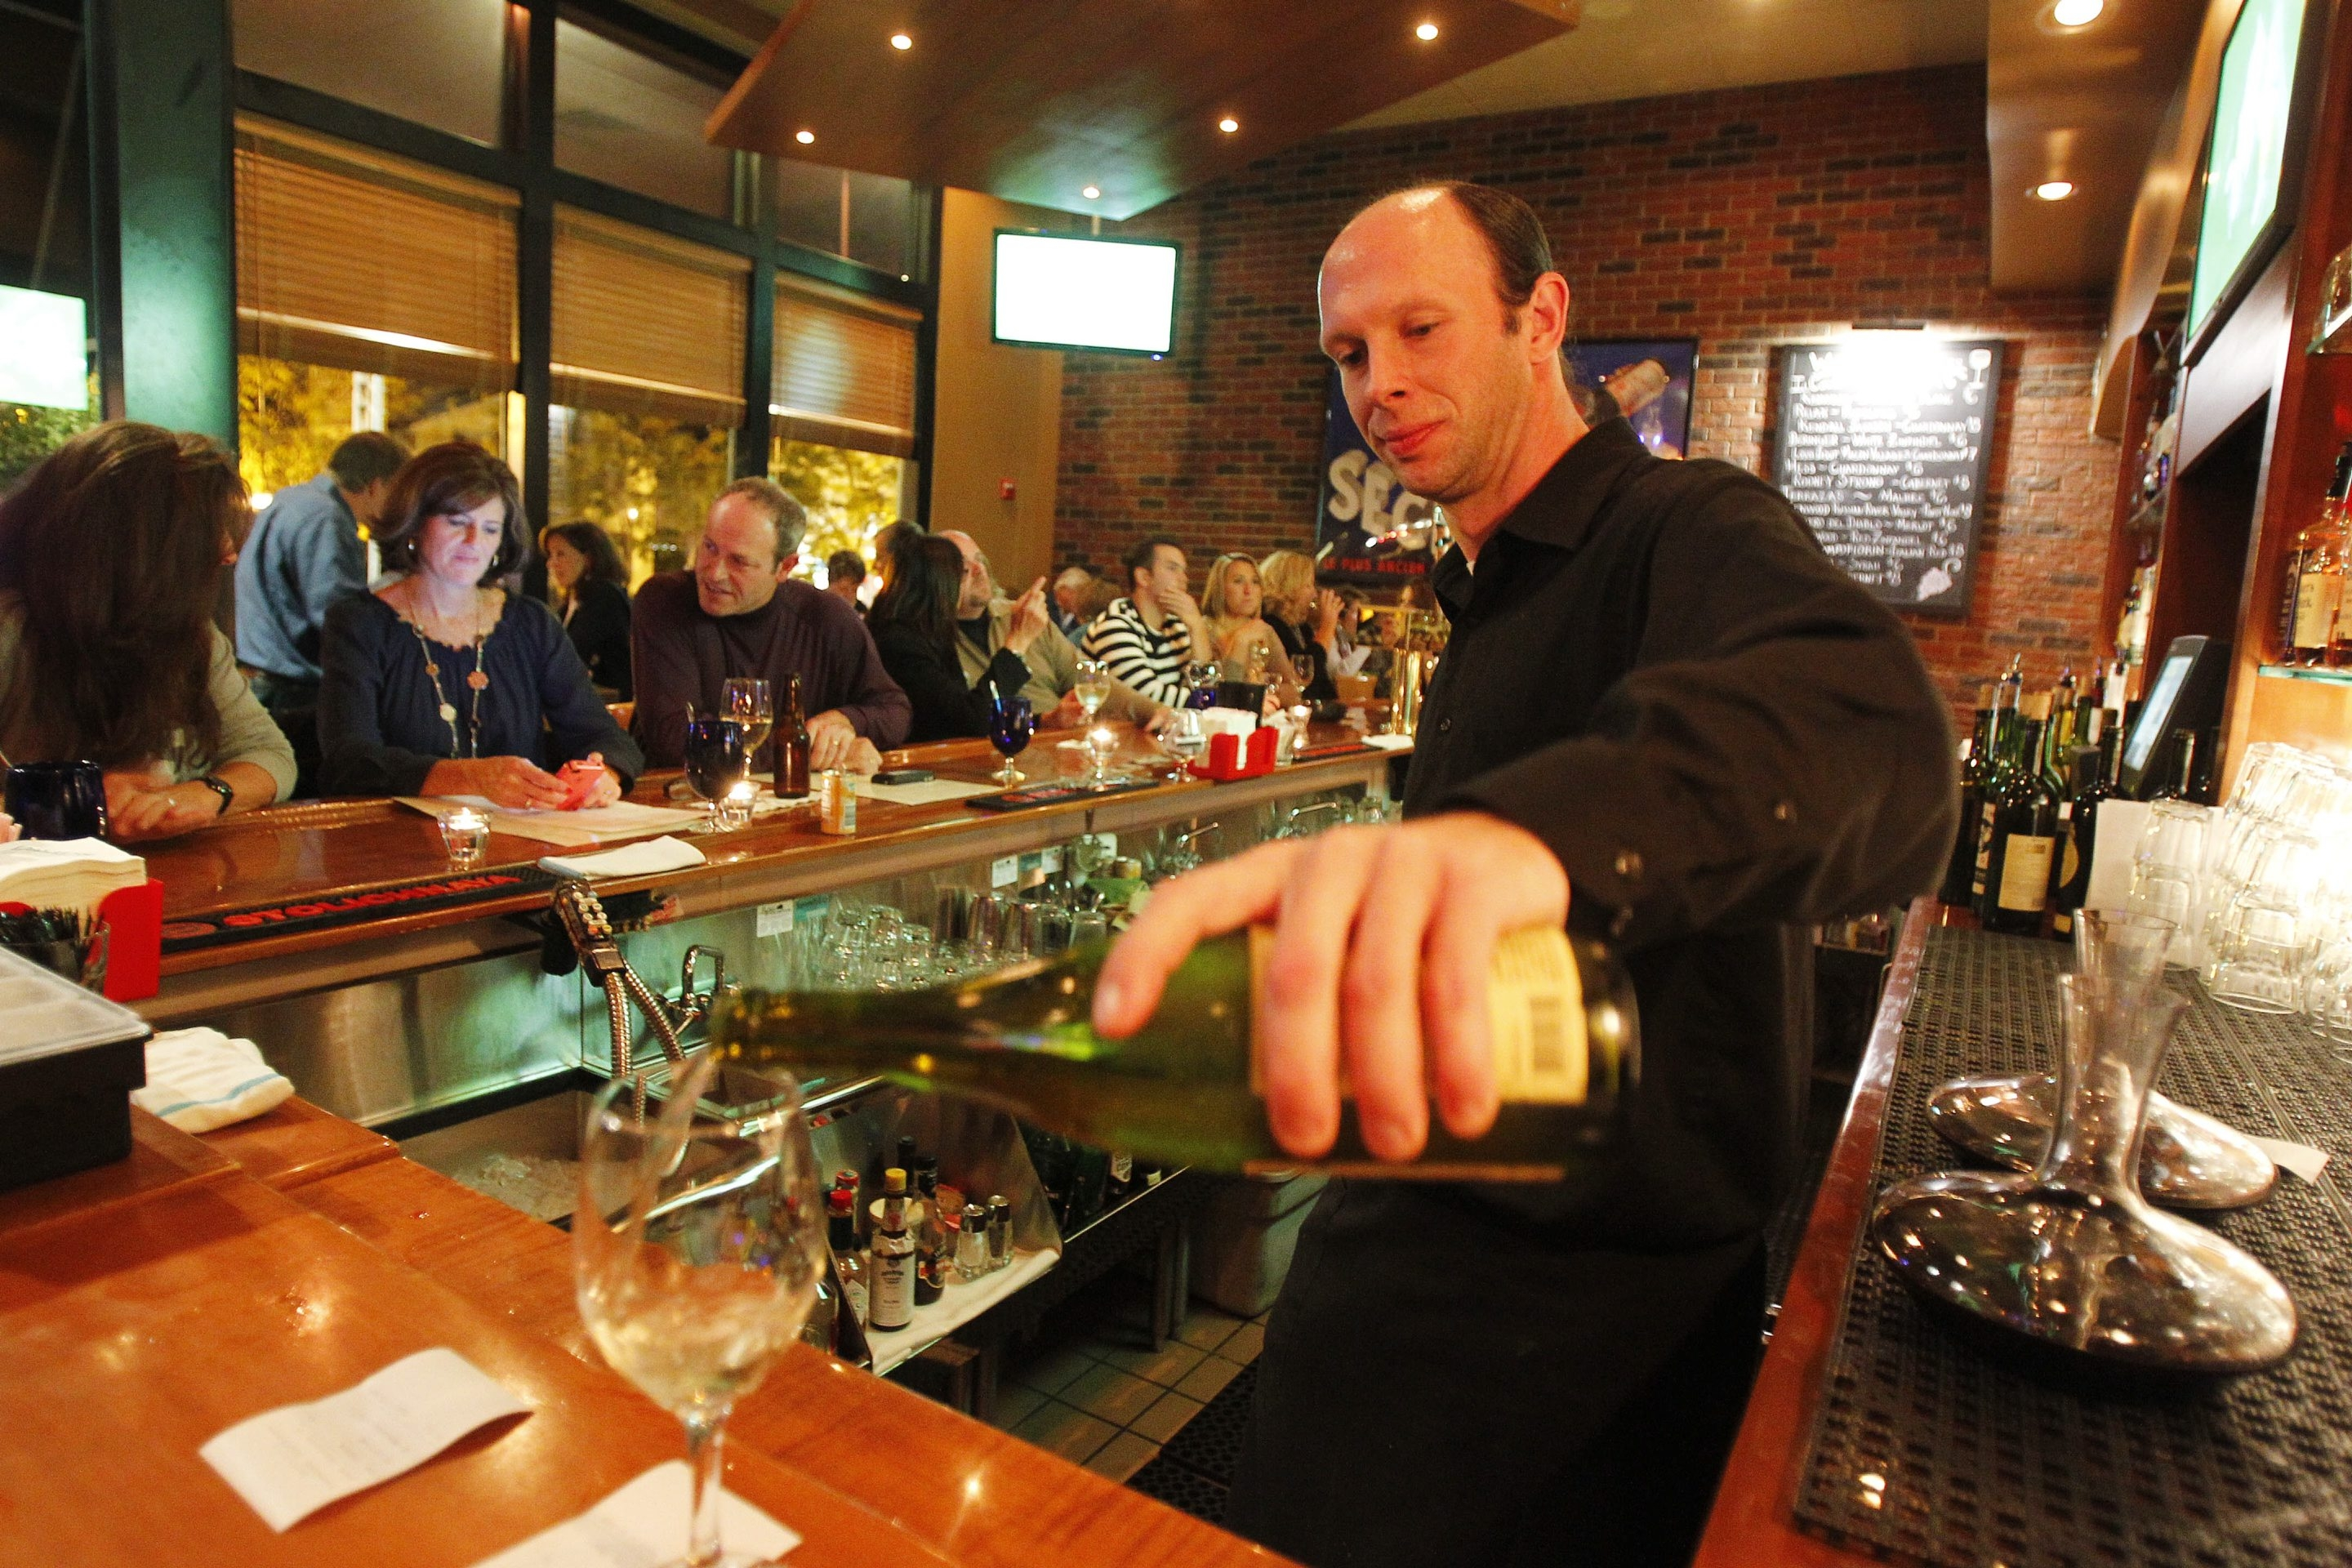 Mark Mulville/Buffalo News    Manager Jeremy Ryan pours a glass of wine at David's Grille in Orchard Park.